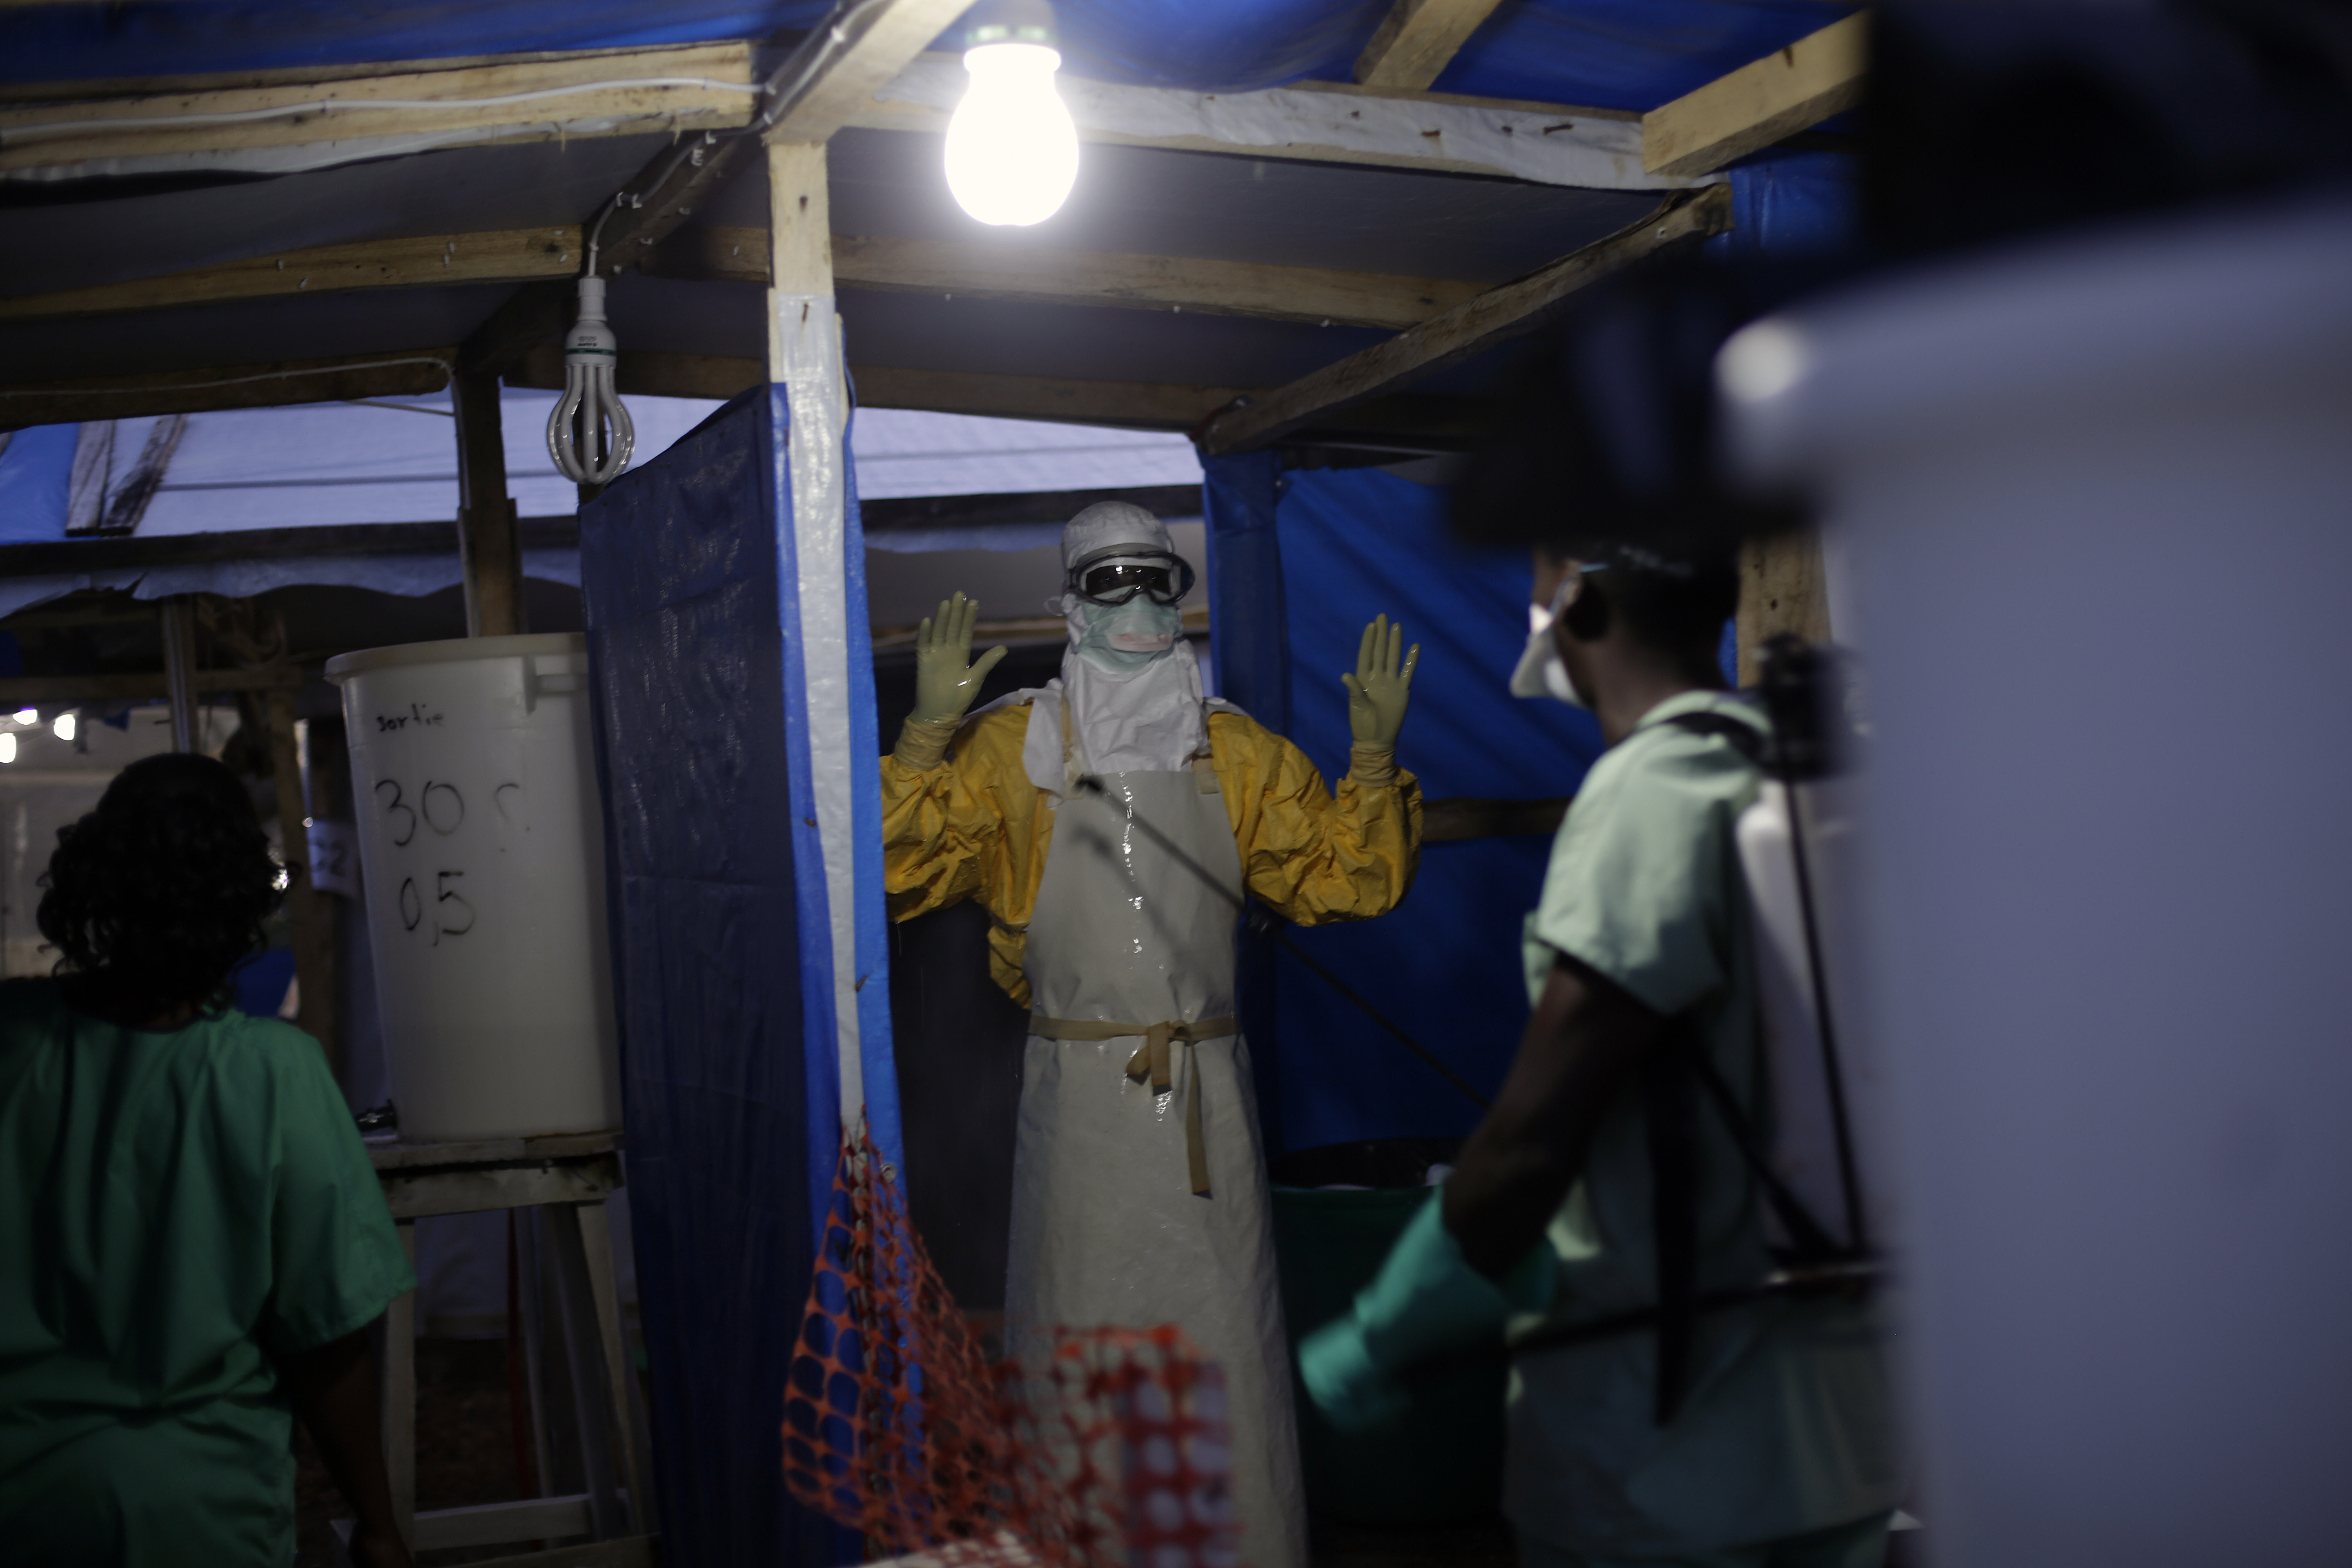 An MSF Ebola heath worker is sprayed as he leaves the contaminated zone at the Ebola treatment centre in Gueckedou, Guinea, on Nov. 20, 2014.